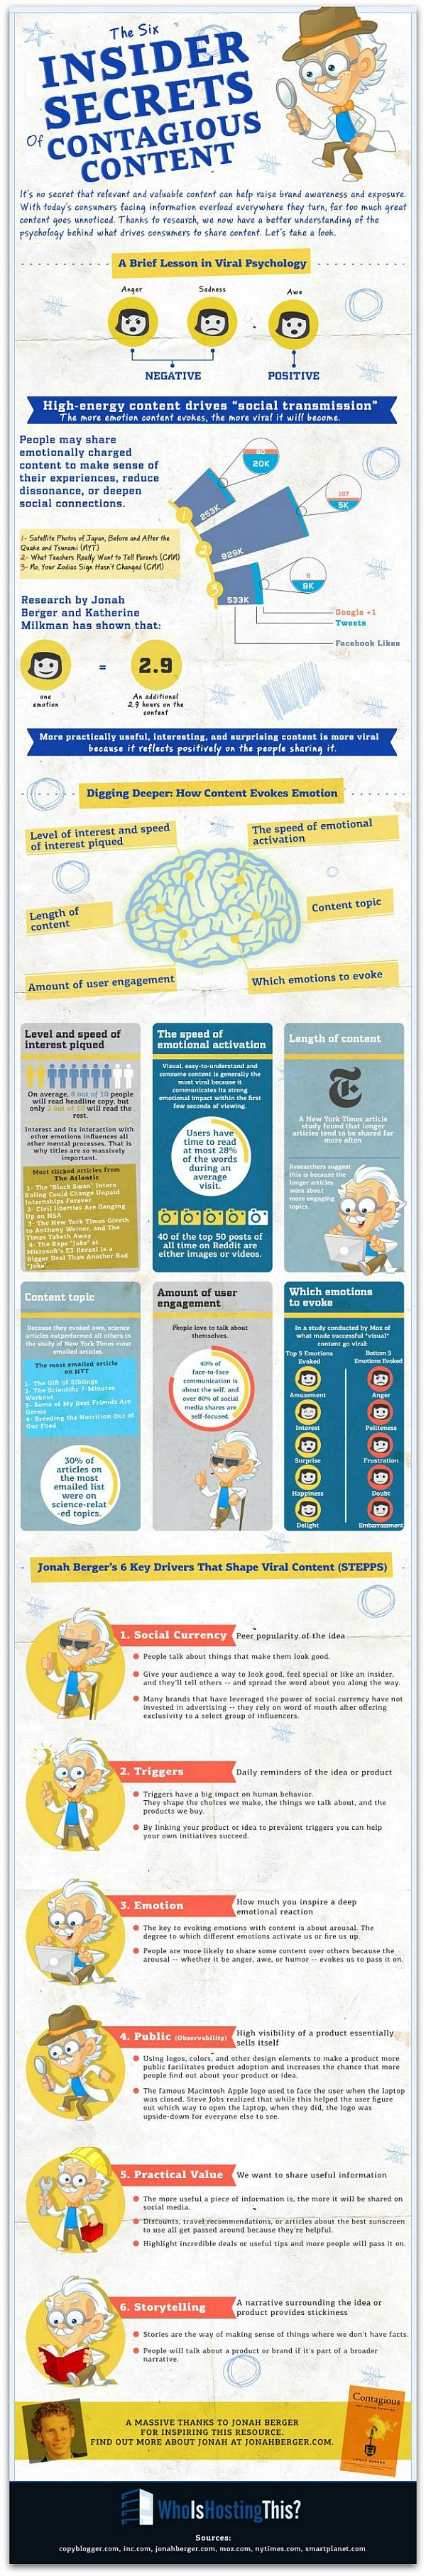 Infographic The 6 Psychological Triggers Behind Viral Content - Articles